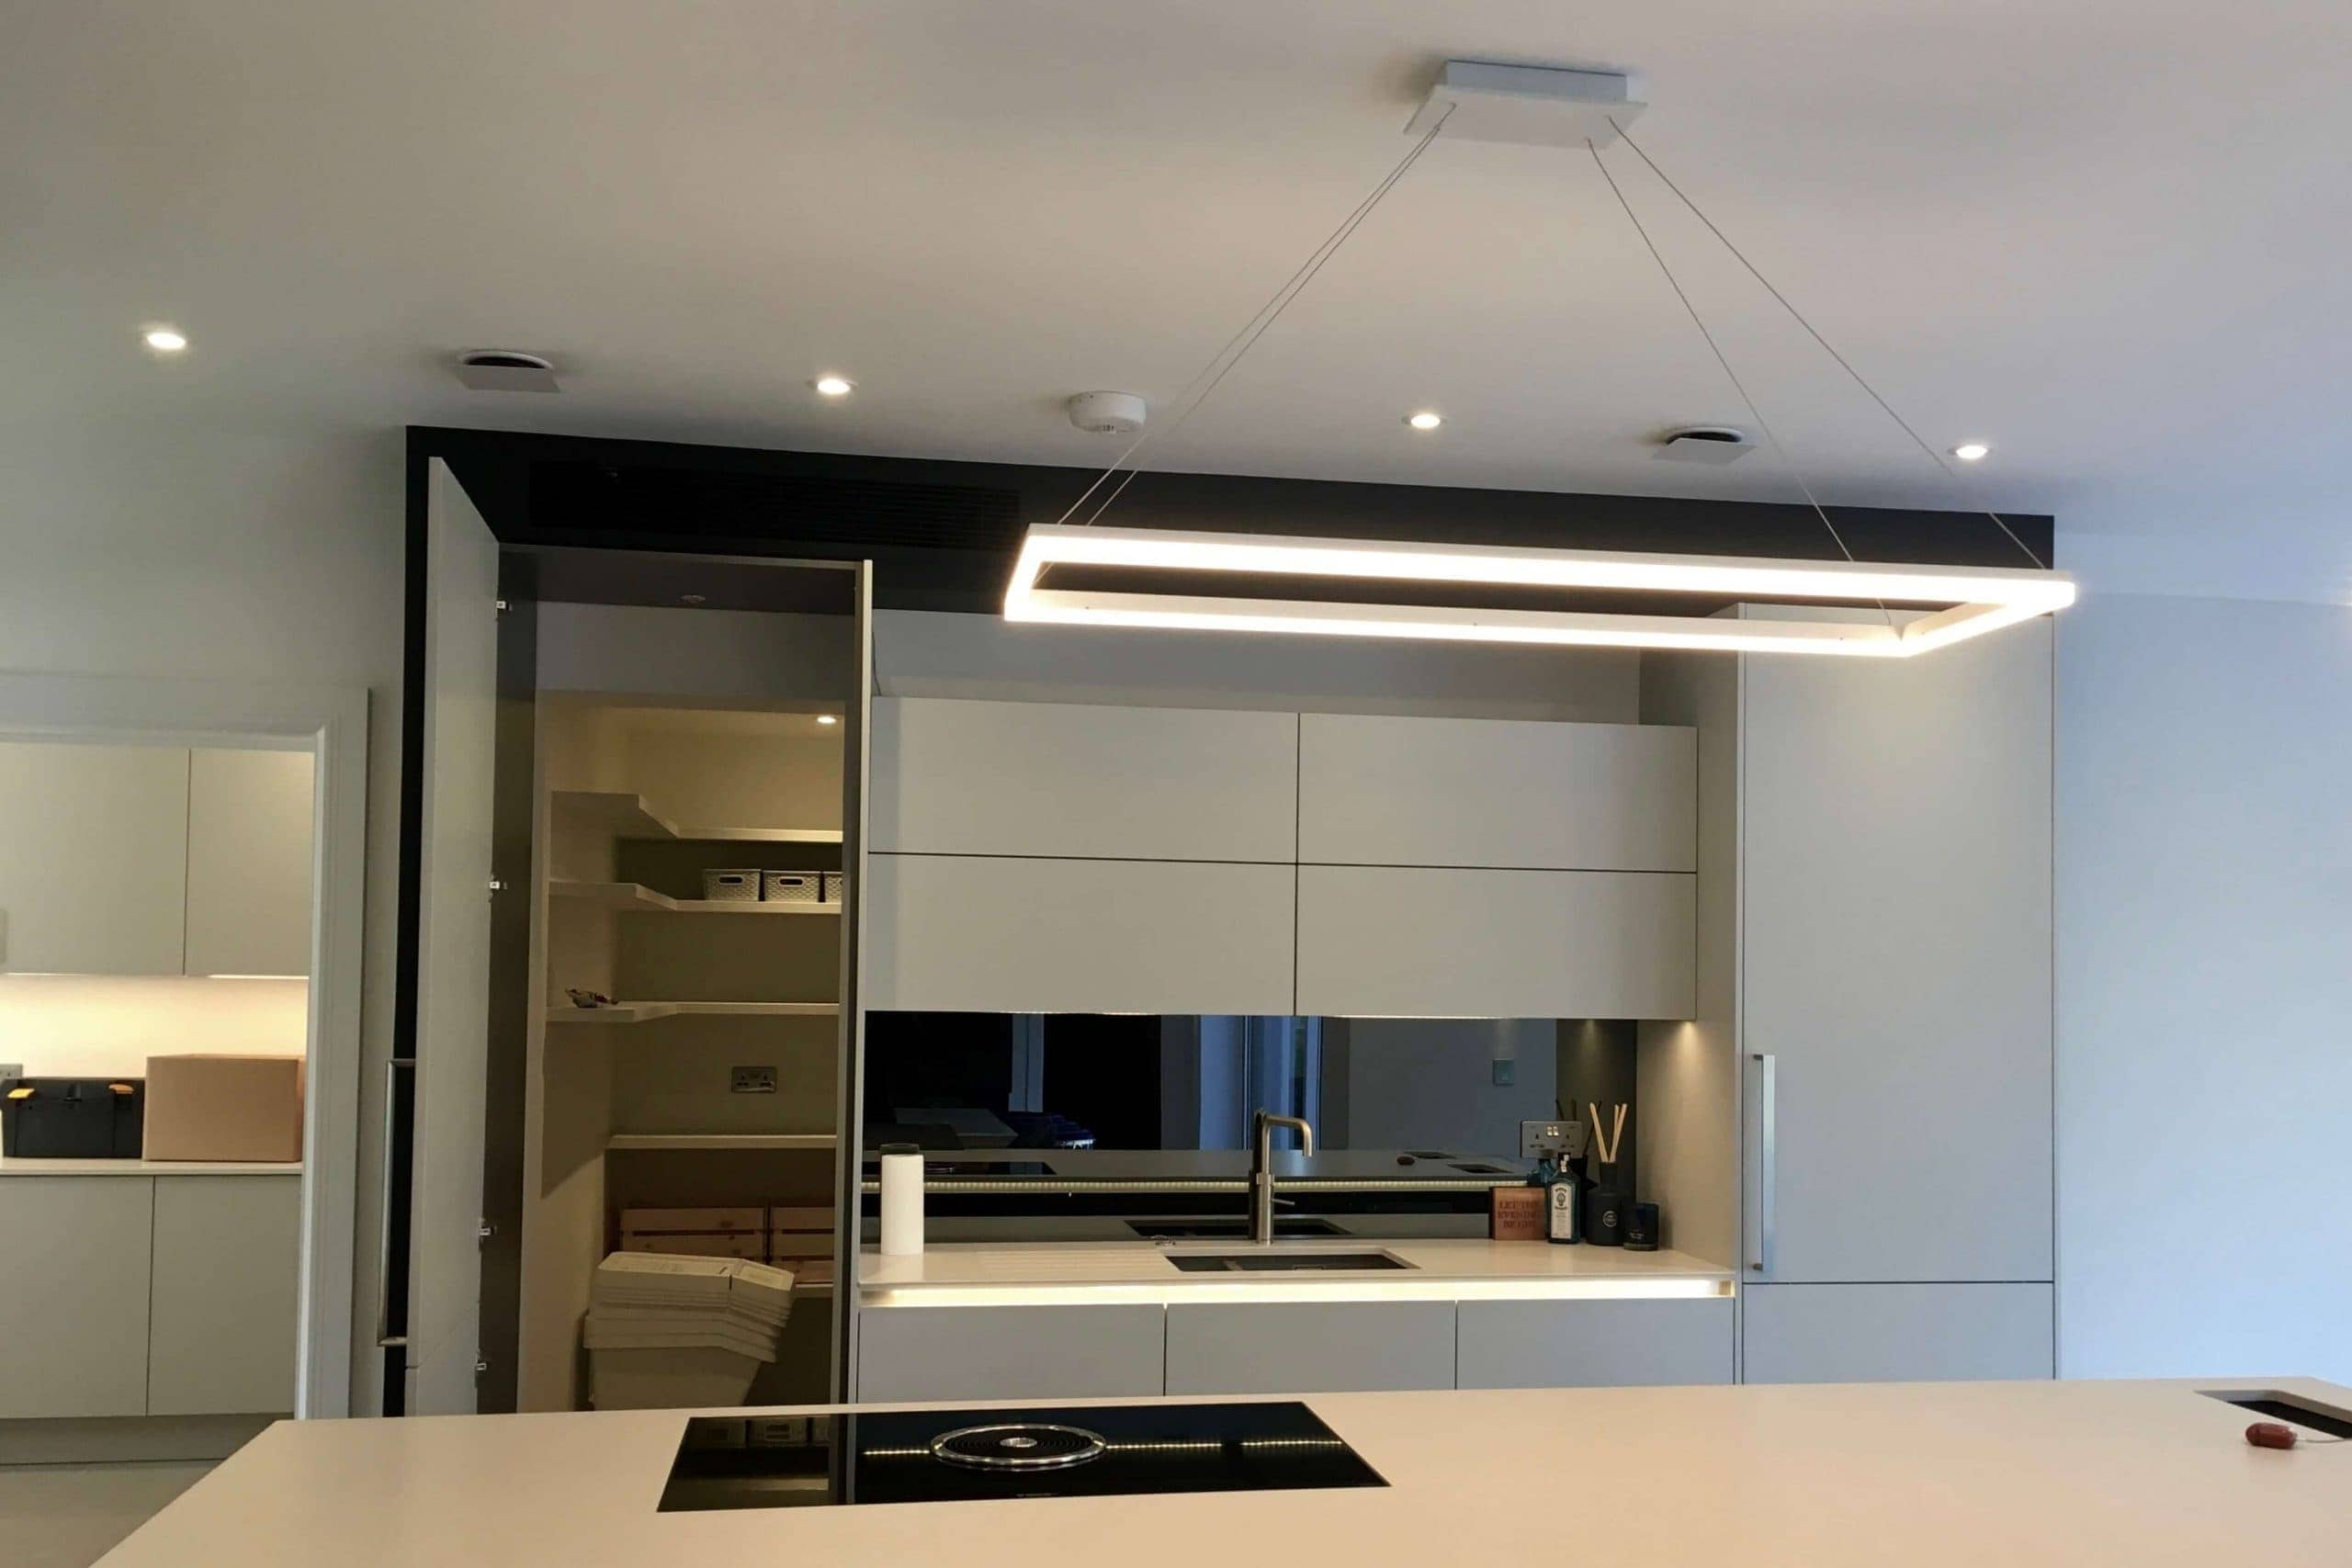 Scandia Hus new build kitchen with invisible Mitsubishi air con grill and MVHR system by SubCool FM hidden door to chill room open